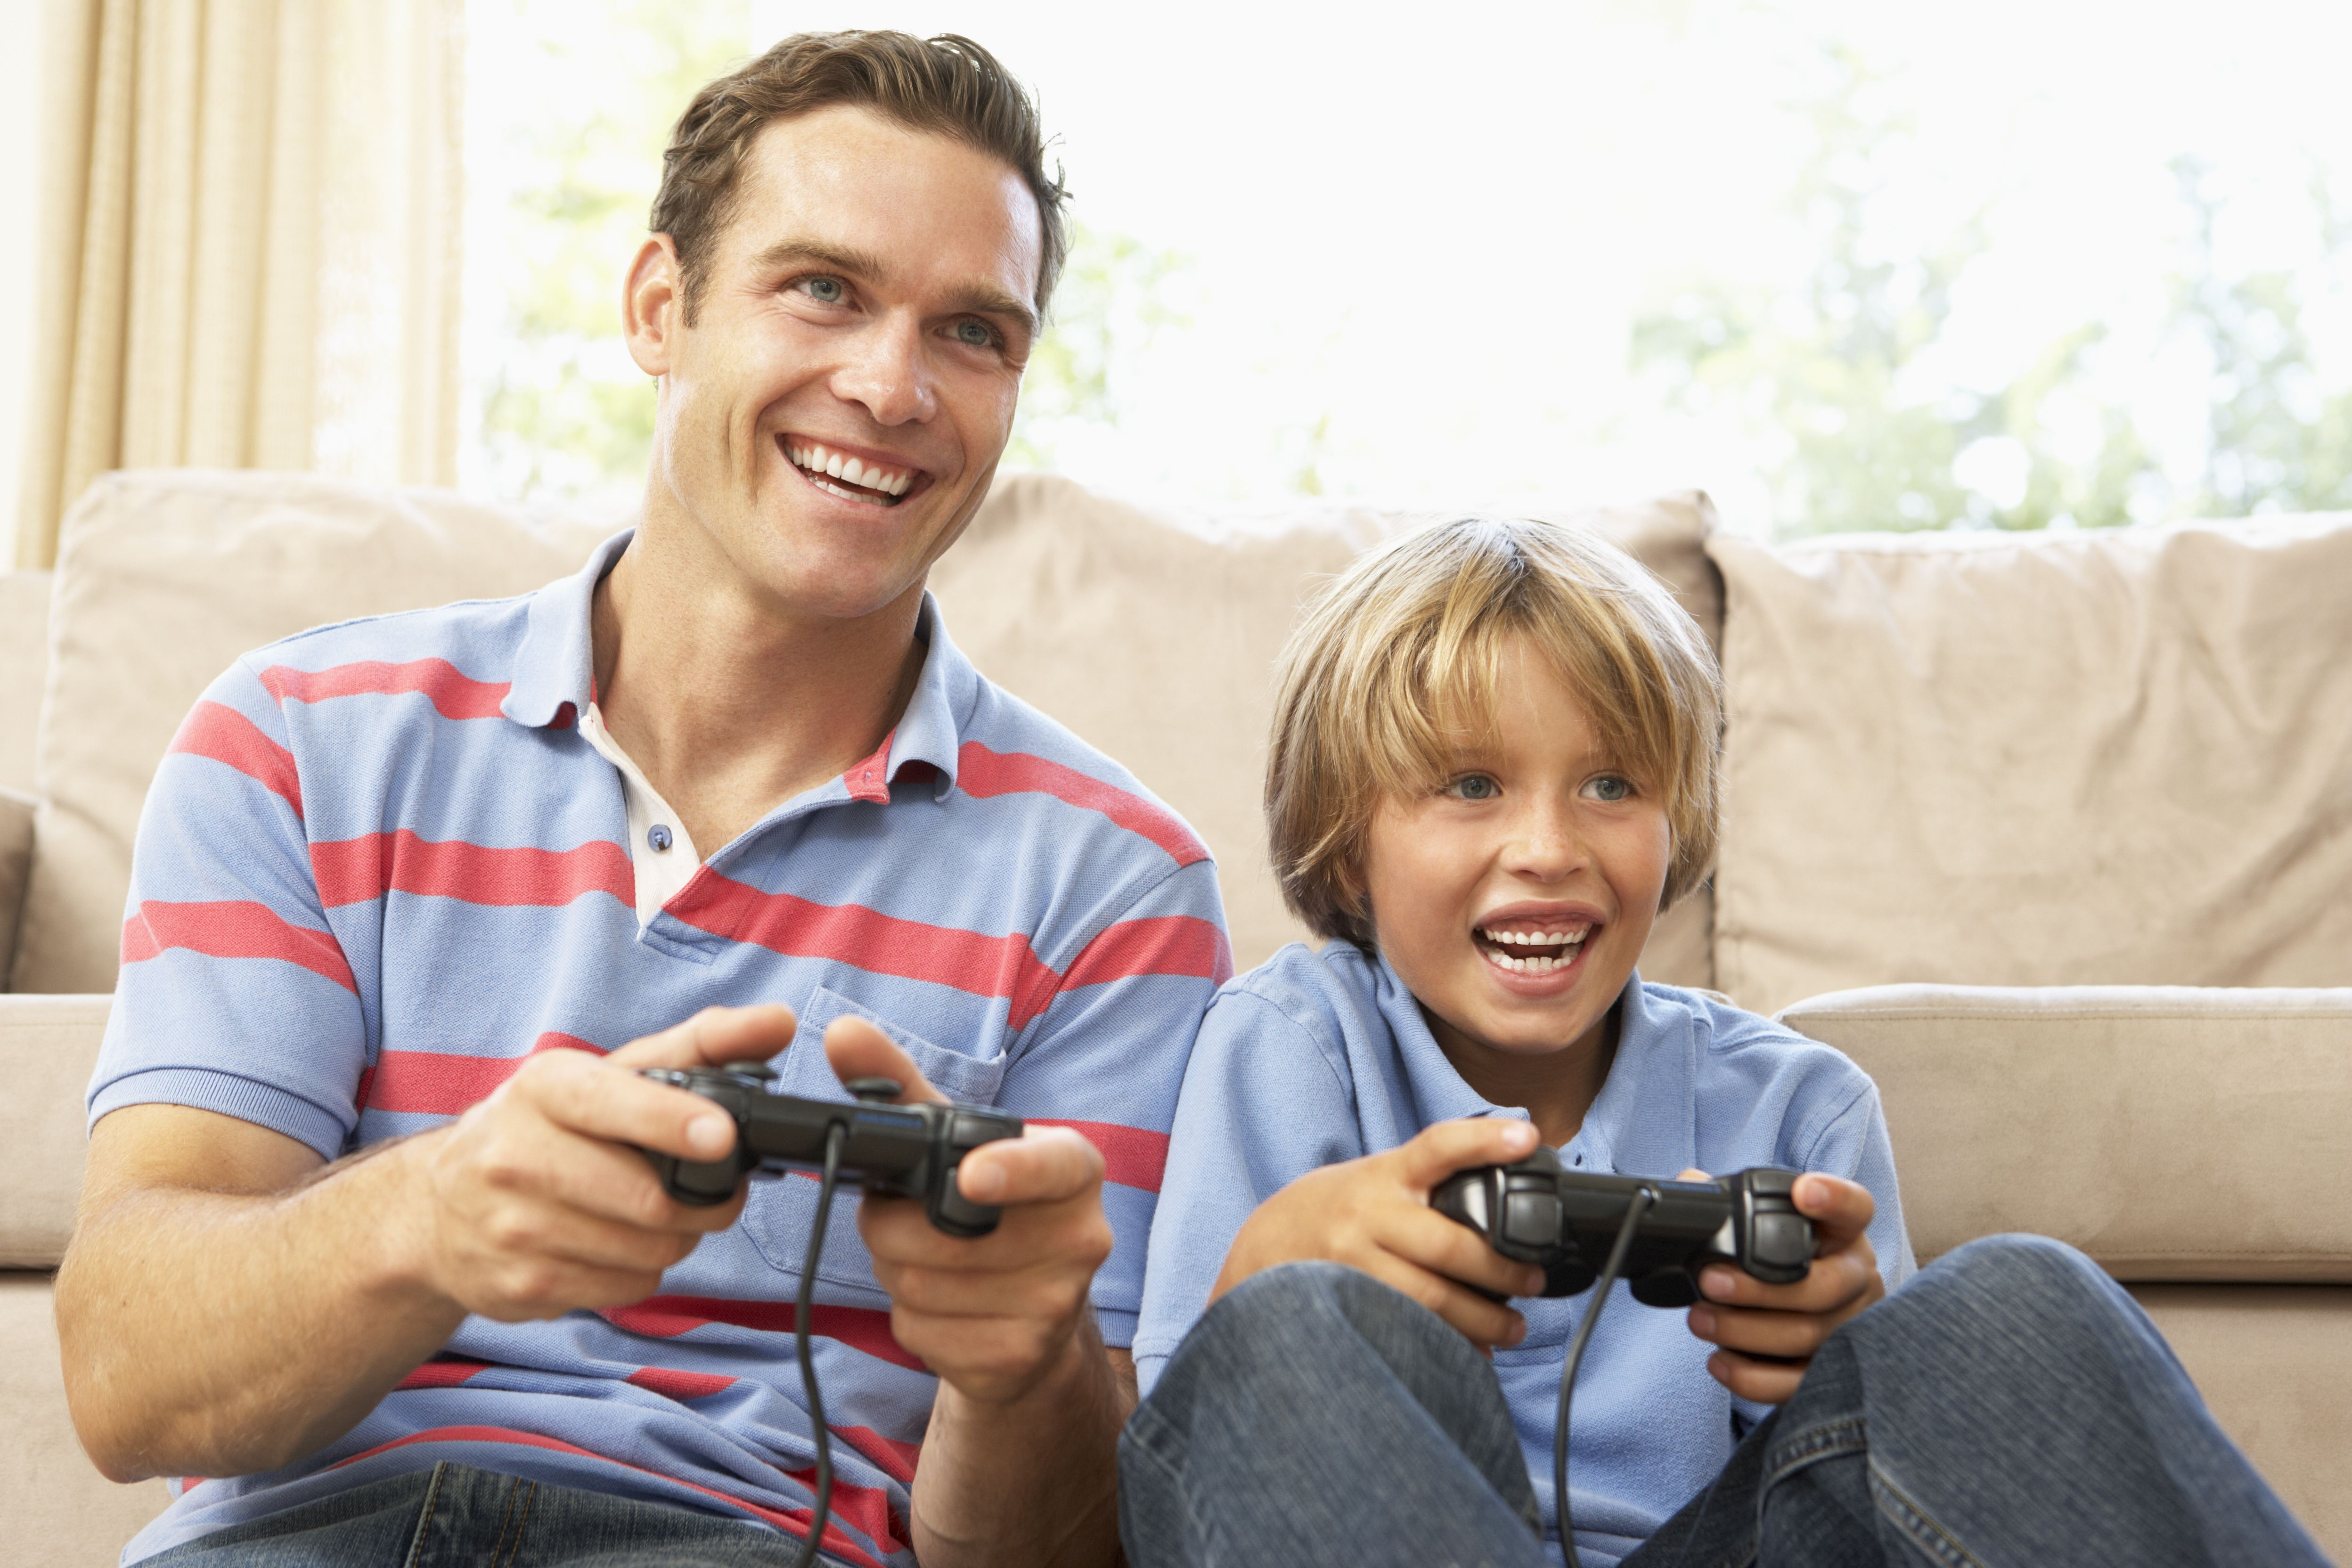 father and son video games